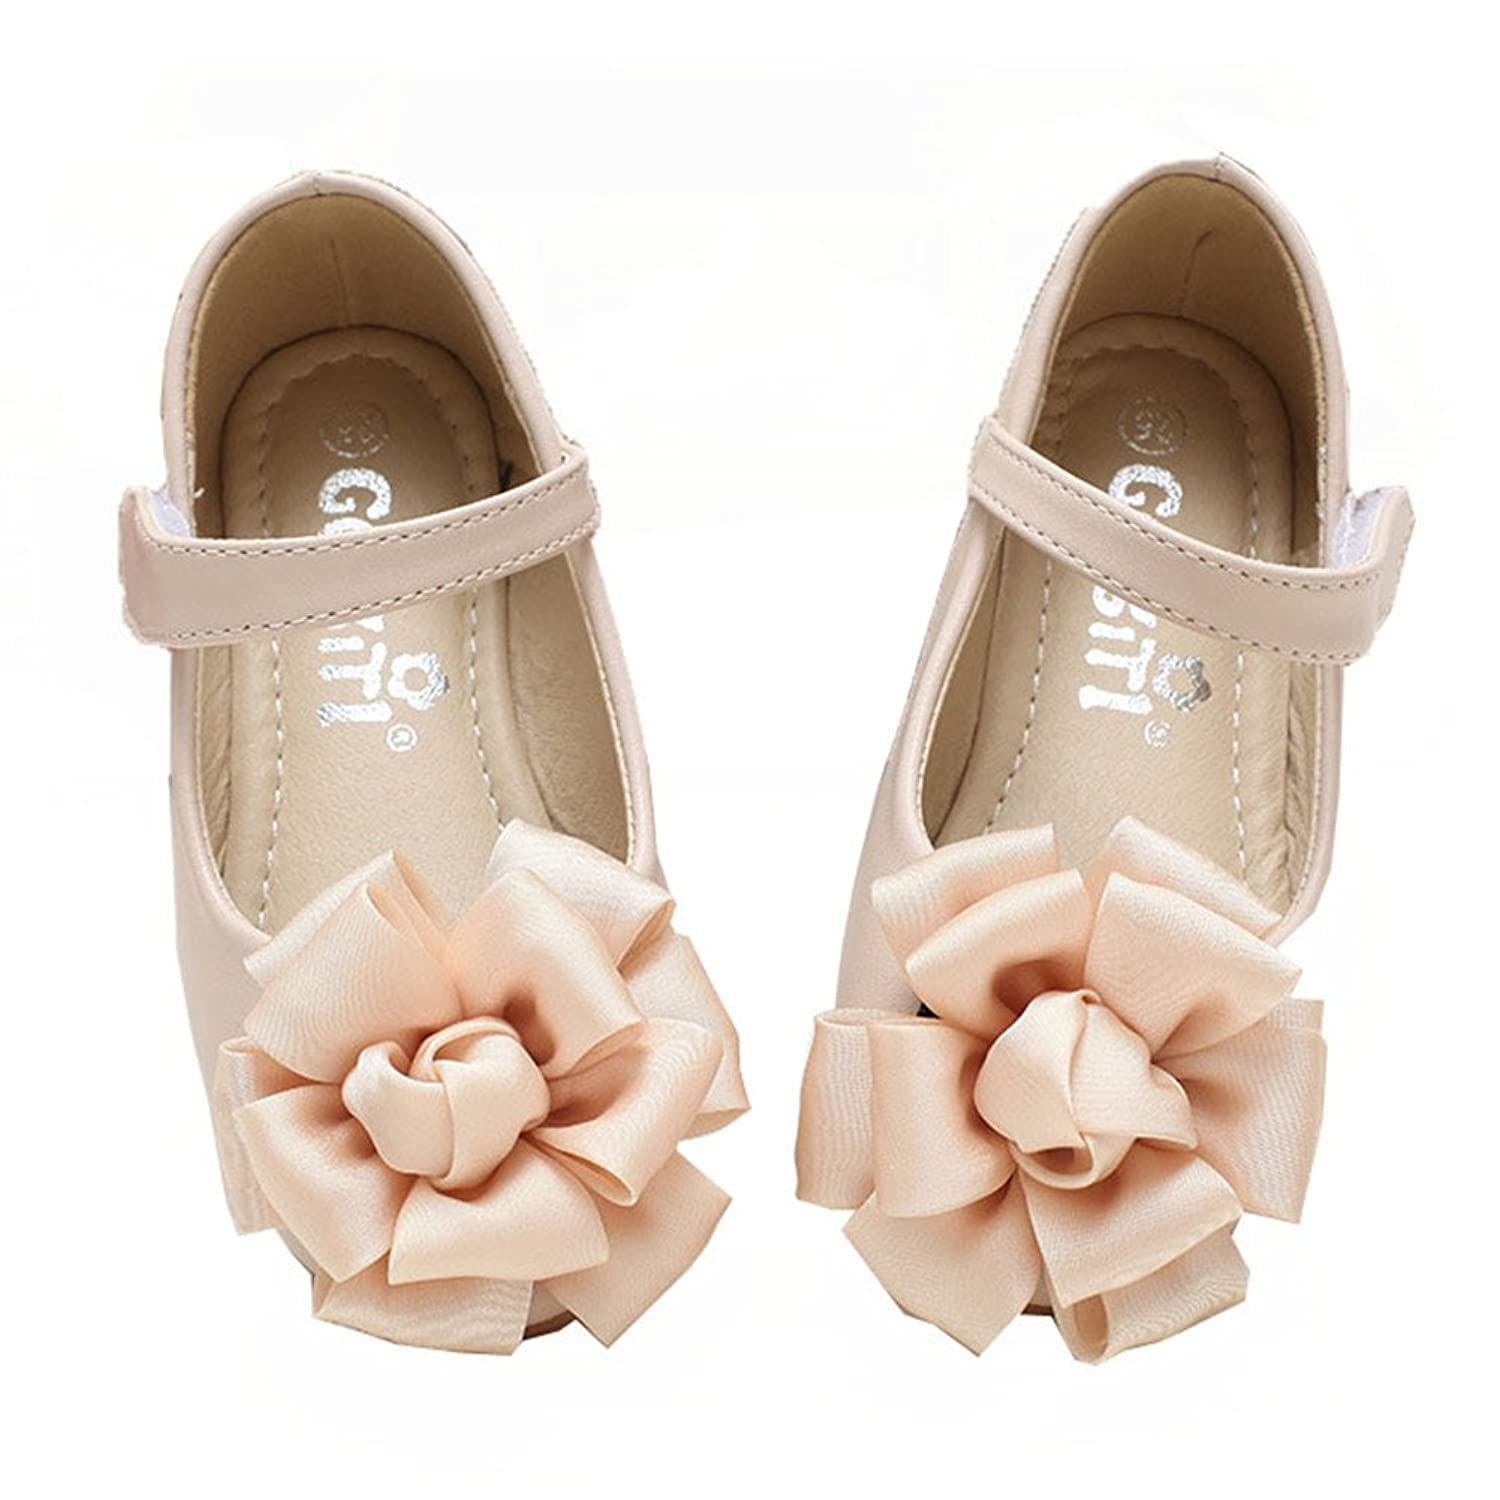 01a170a2bd6 Always Pretty Bow Round Toe Ballet Flats Slip On Shoes (Toddler Little Kid